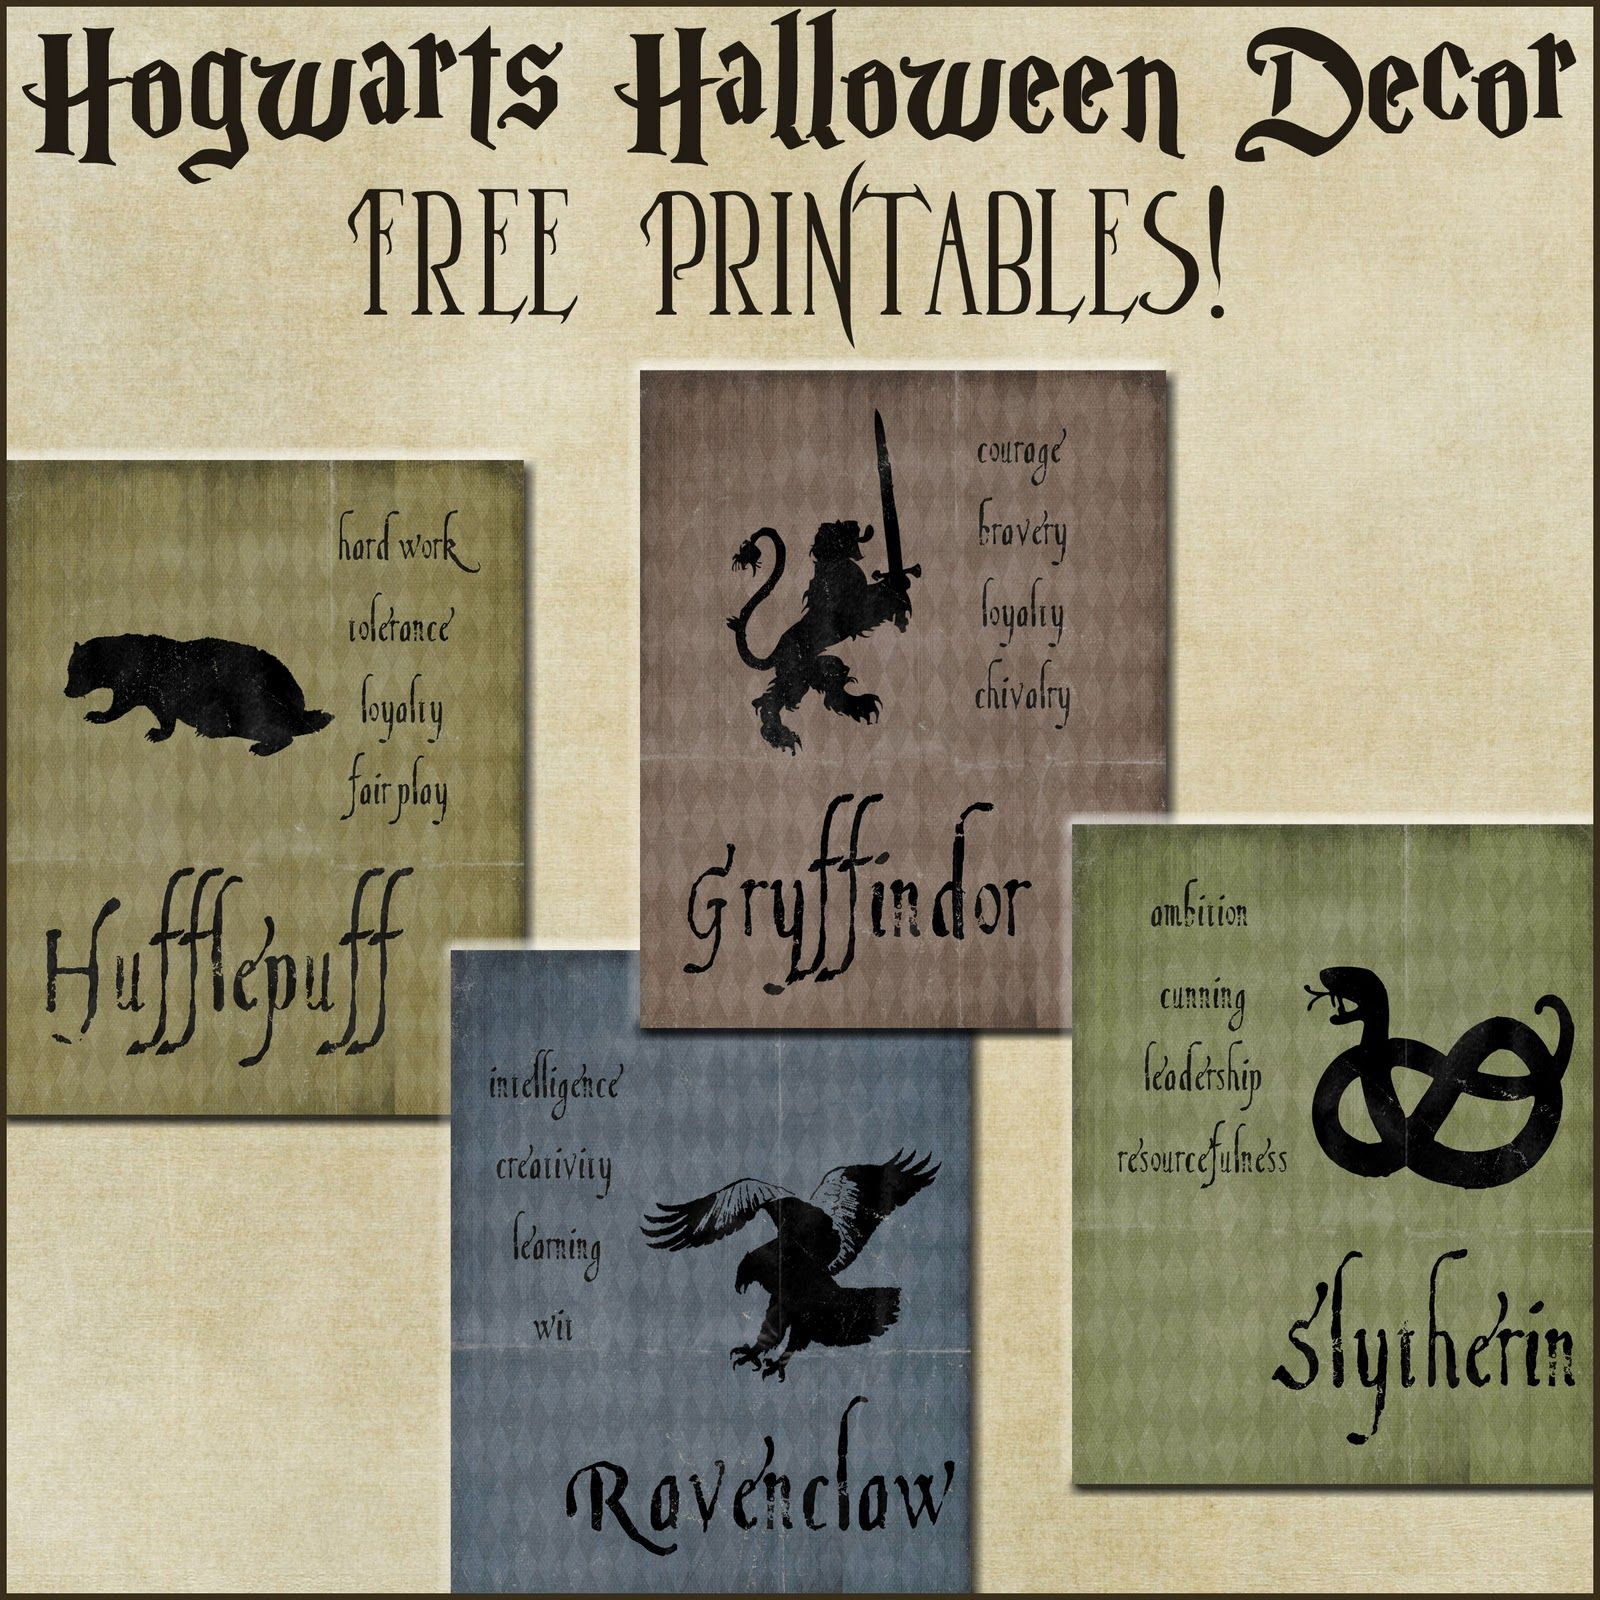 Halloween Decor: Harry Potter House Posters | Harry Potter Party - Free Printable Harry Potter Posters